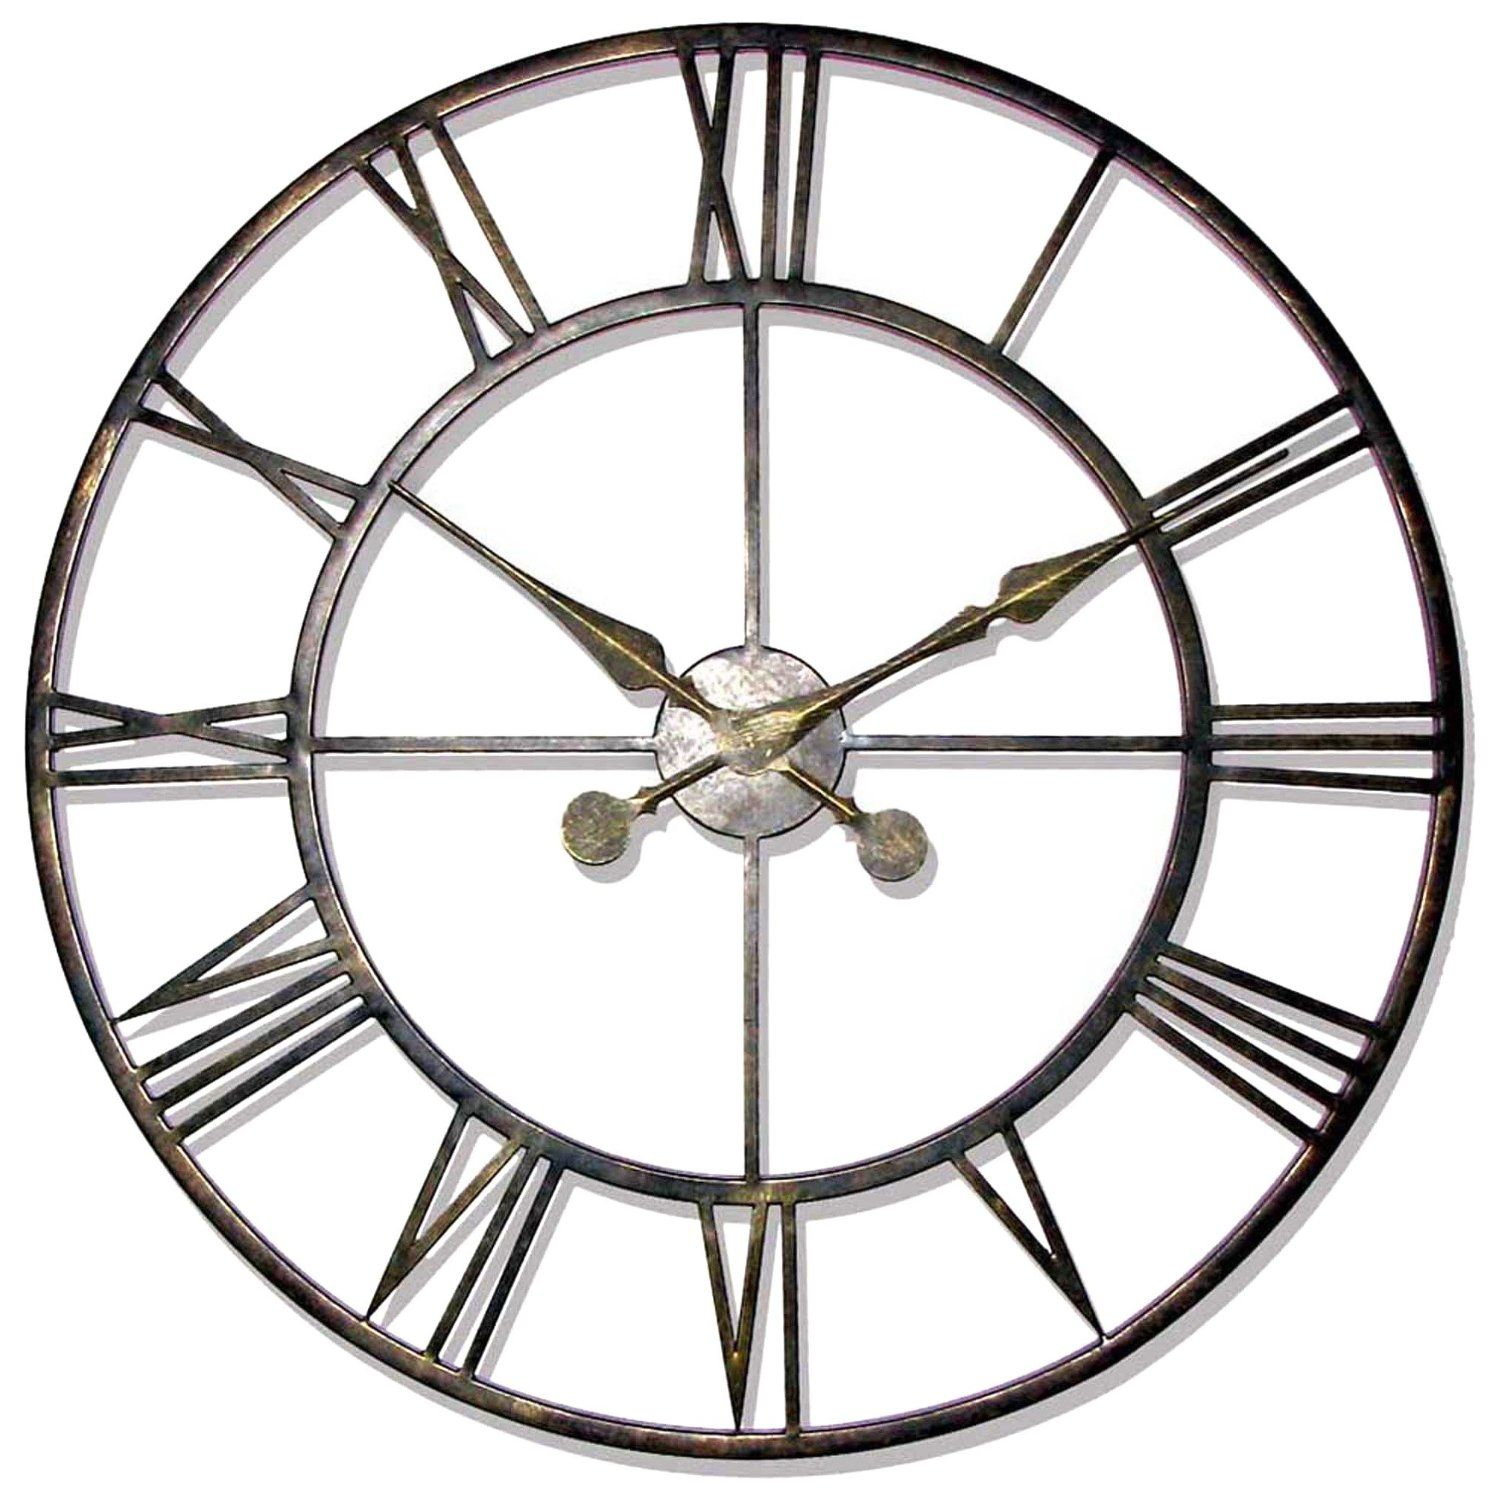 Stylish large wall clocks fun fashionable home accessories and stylish large wall clocks fun fashionable home accessories and decor amipublicfo Image collections